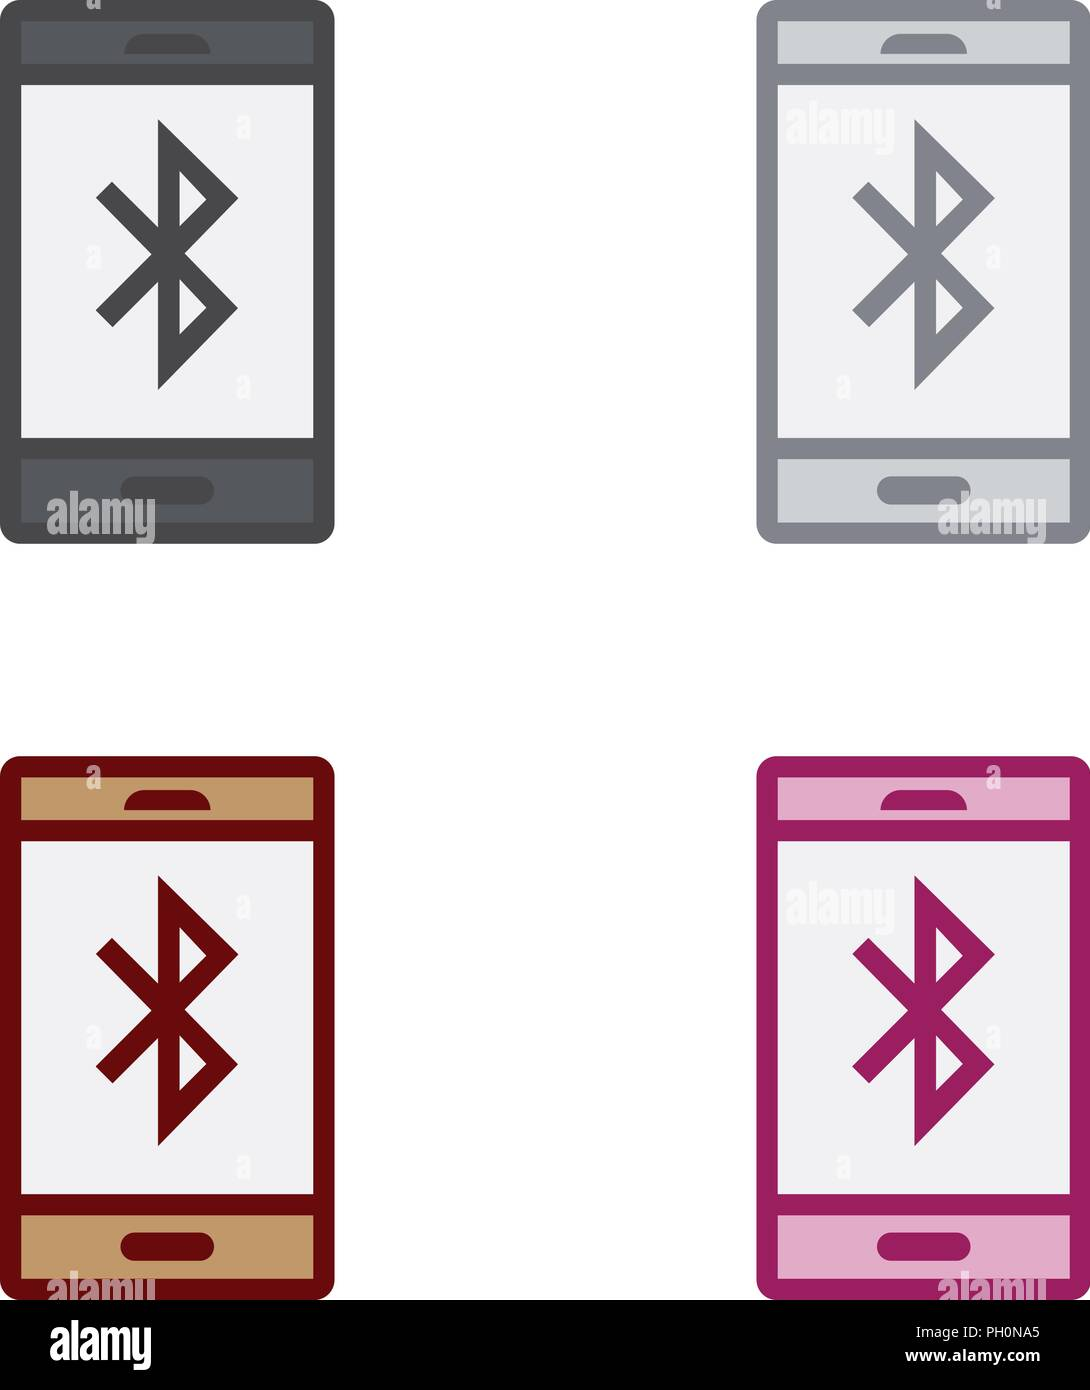 Smartphone Bluetooth Stock Vector Art Illustration Vector Image